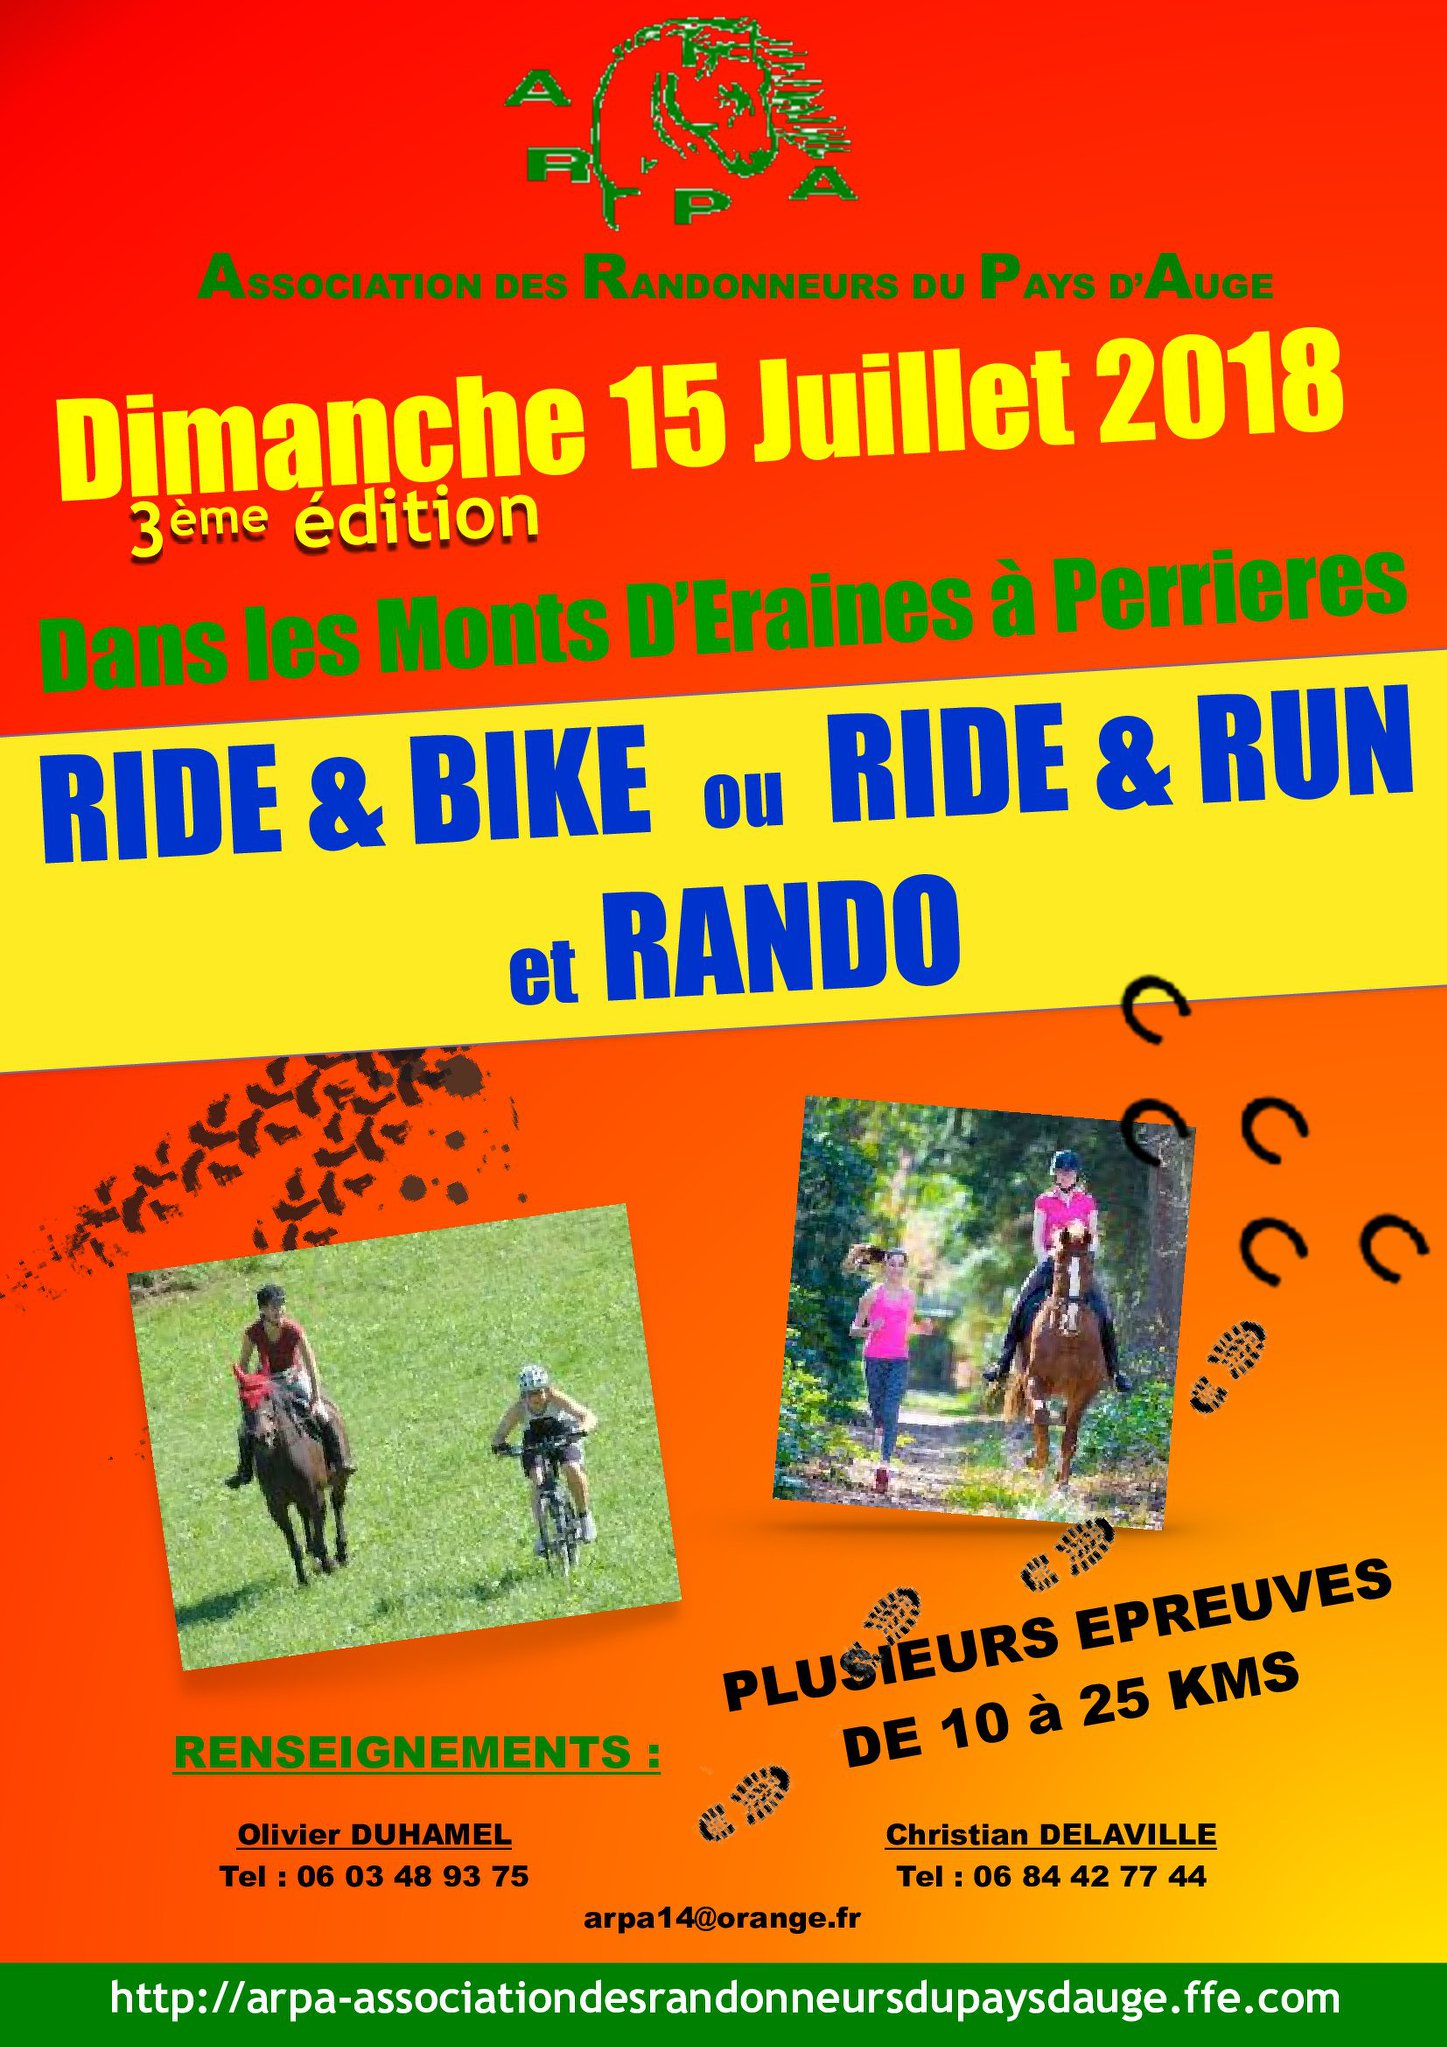 Ride Run Bike 2018 arpa